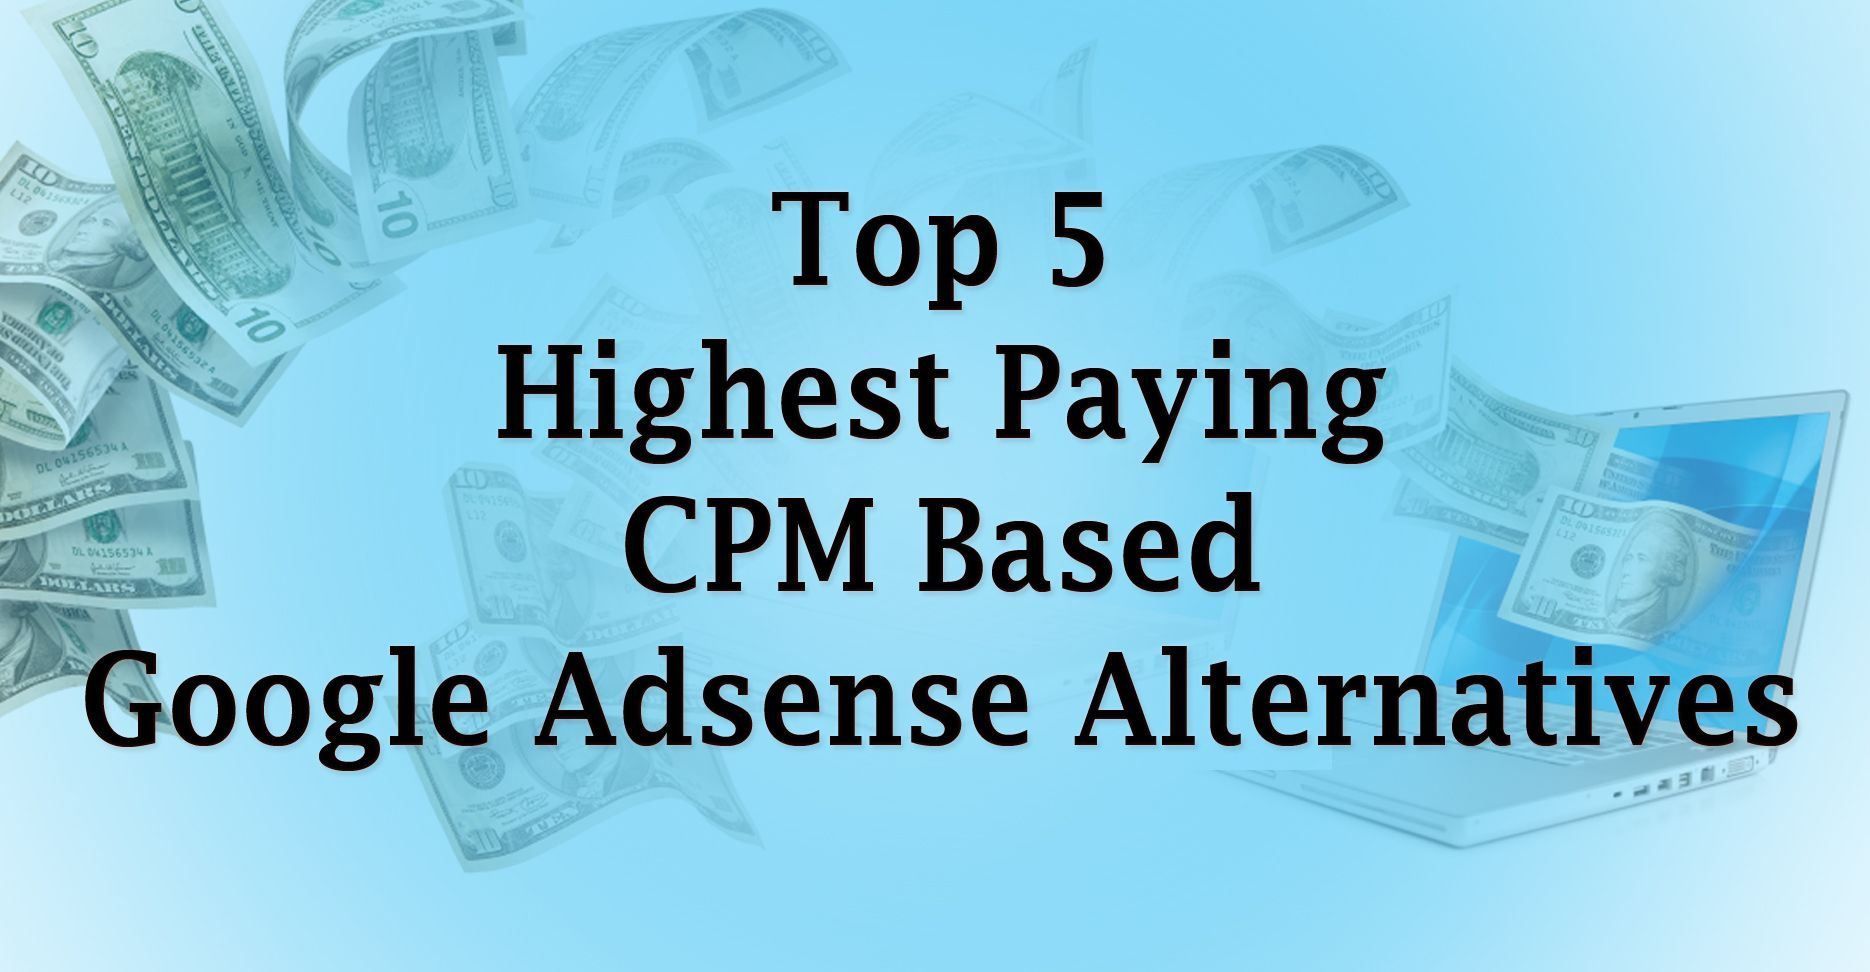 Top 5 Highest Paying Cpm Based Google Adsense Alternatives Earn